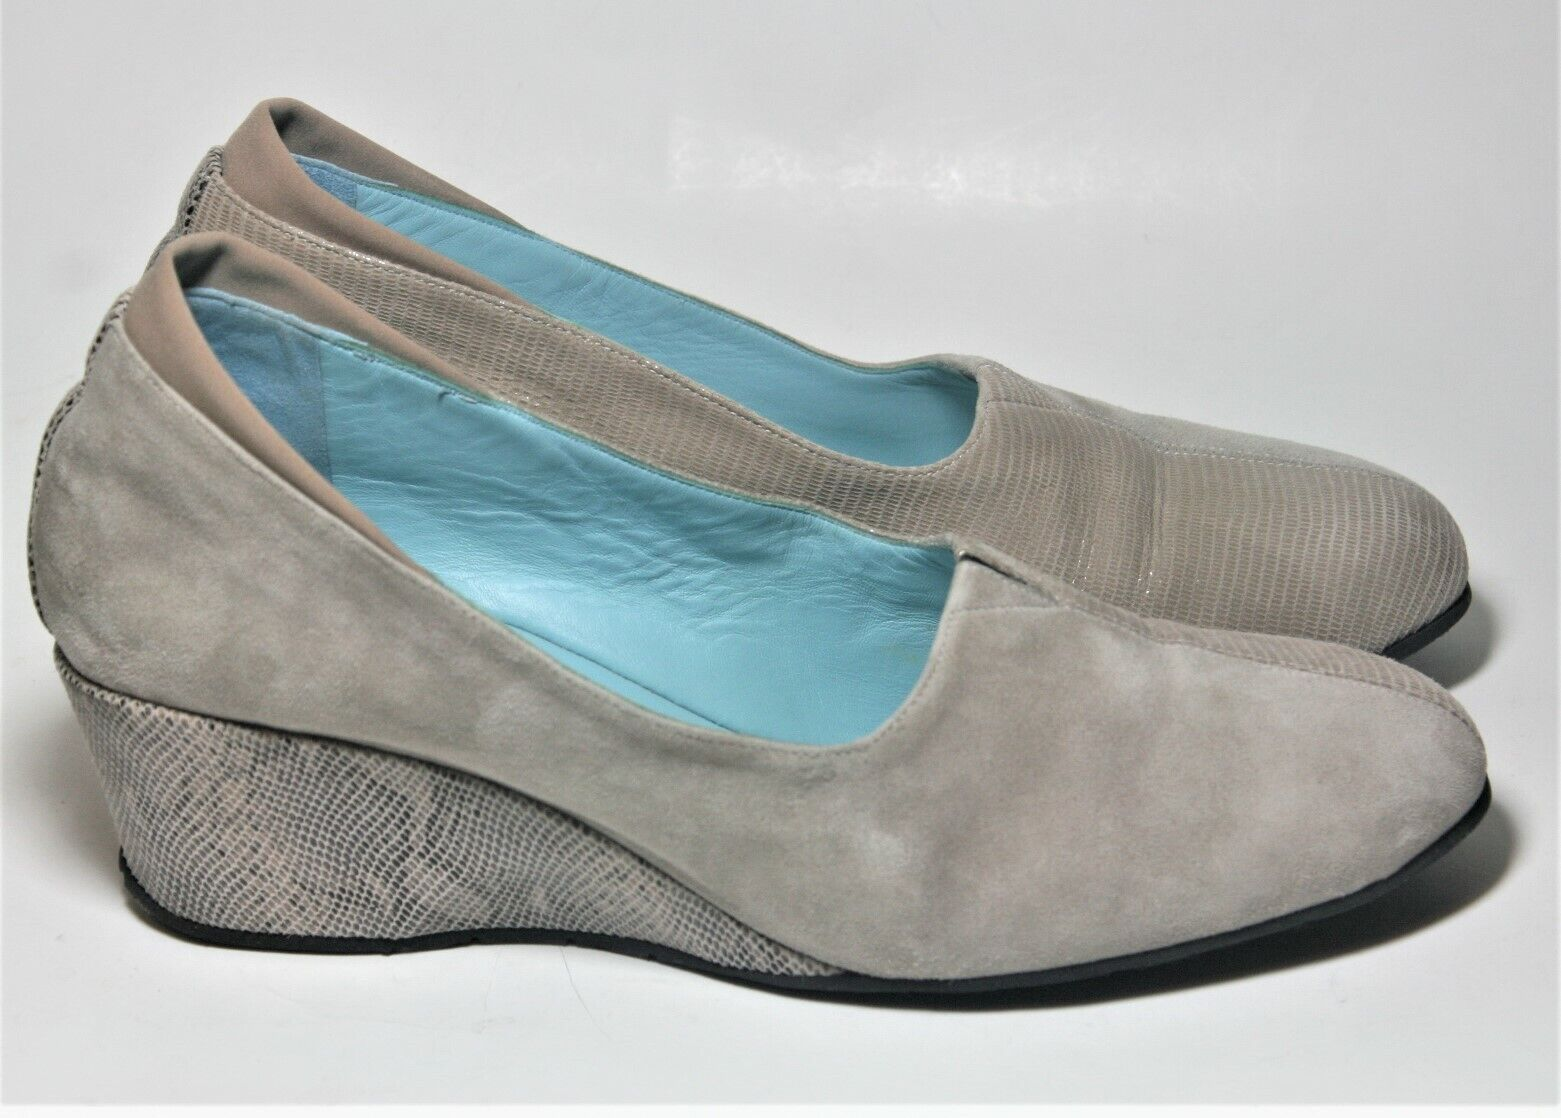 THIERRY RABOTIN SHOES BEIGE MULTI TONE LEATHER WEDGE PUMP 39.5  450